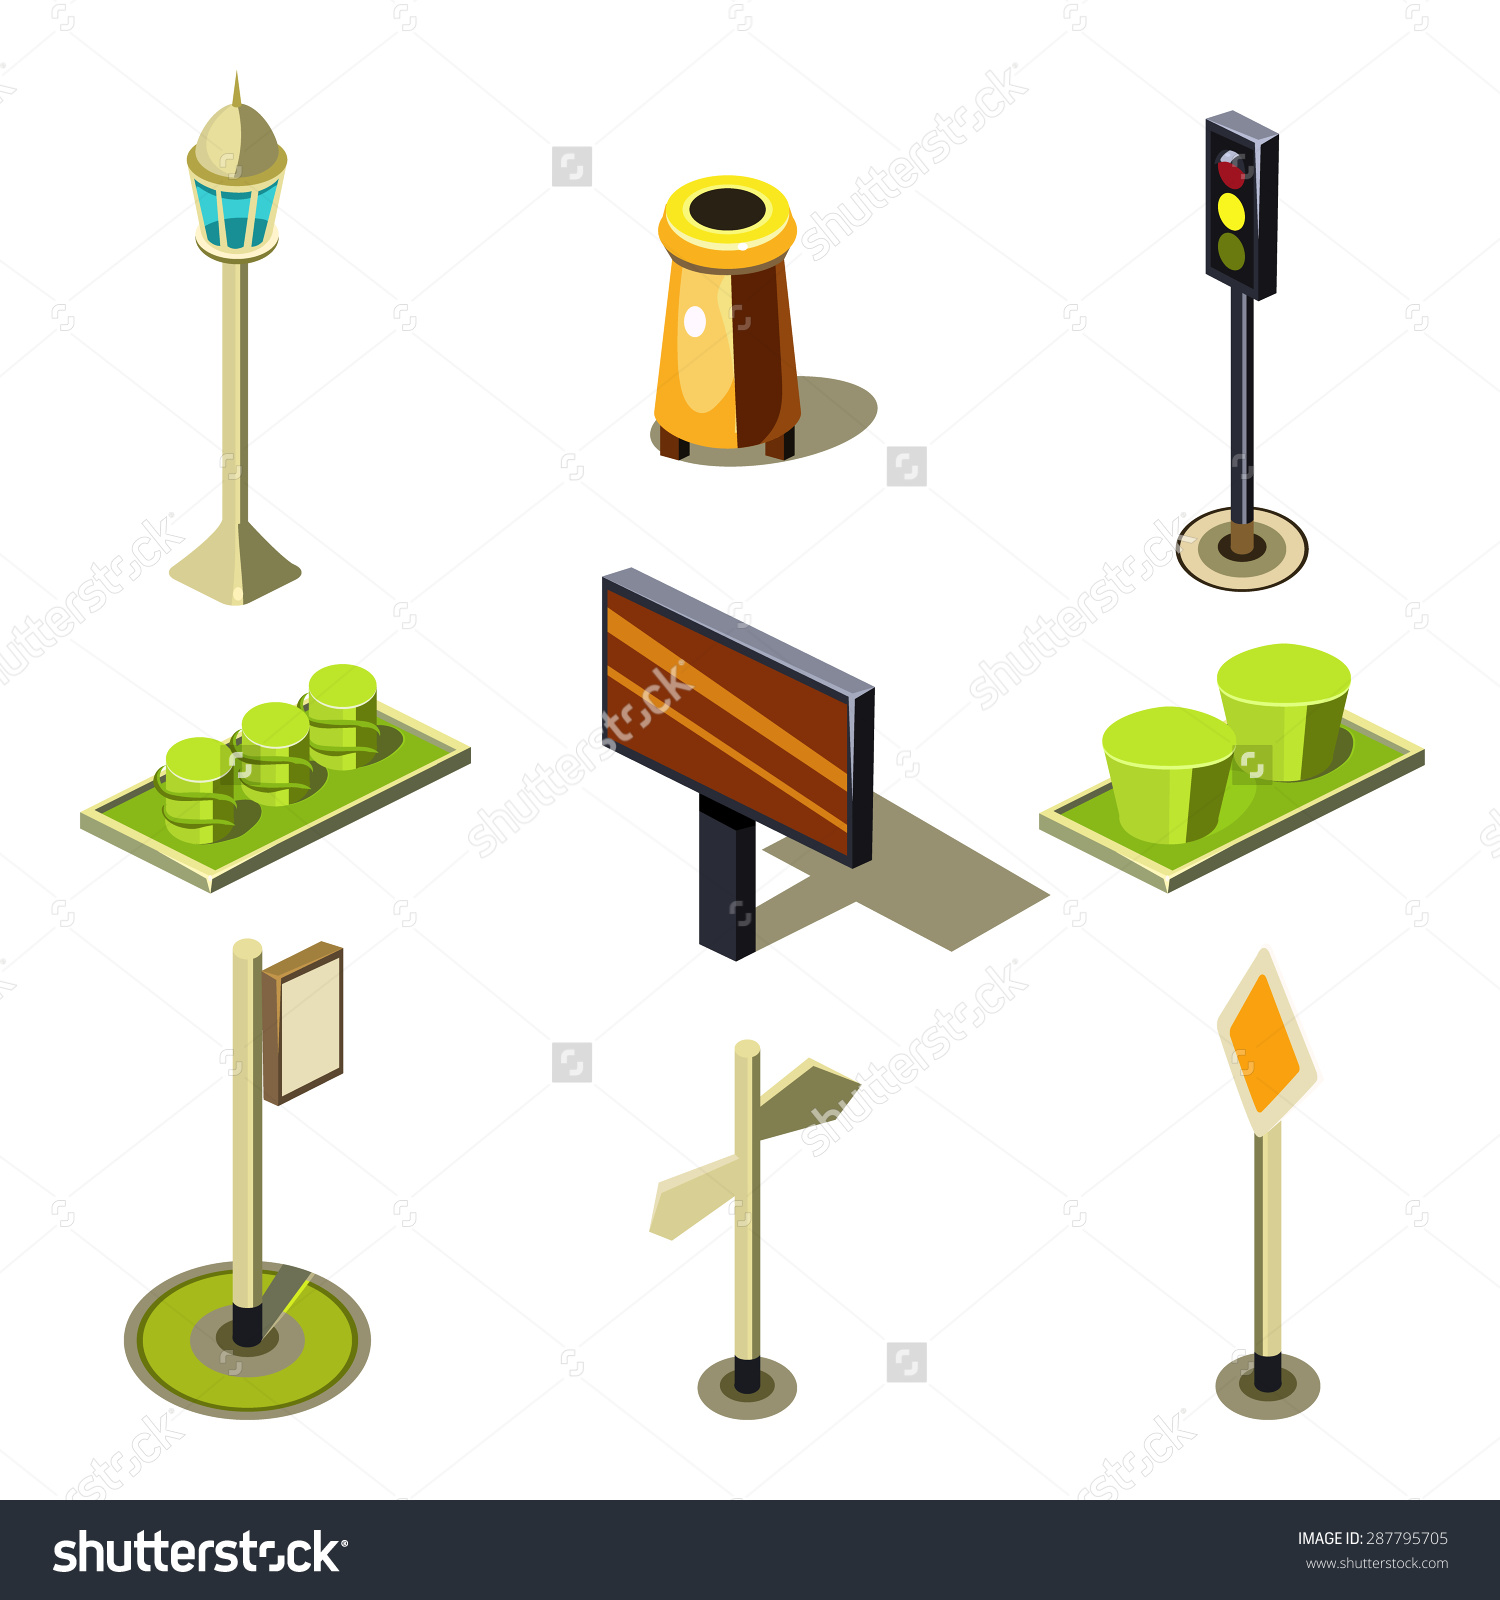 Flat 3d Isometric High Quality City Stock Vector 287795705.